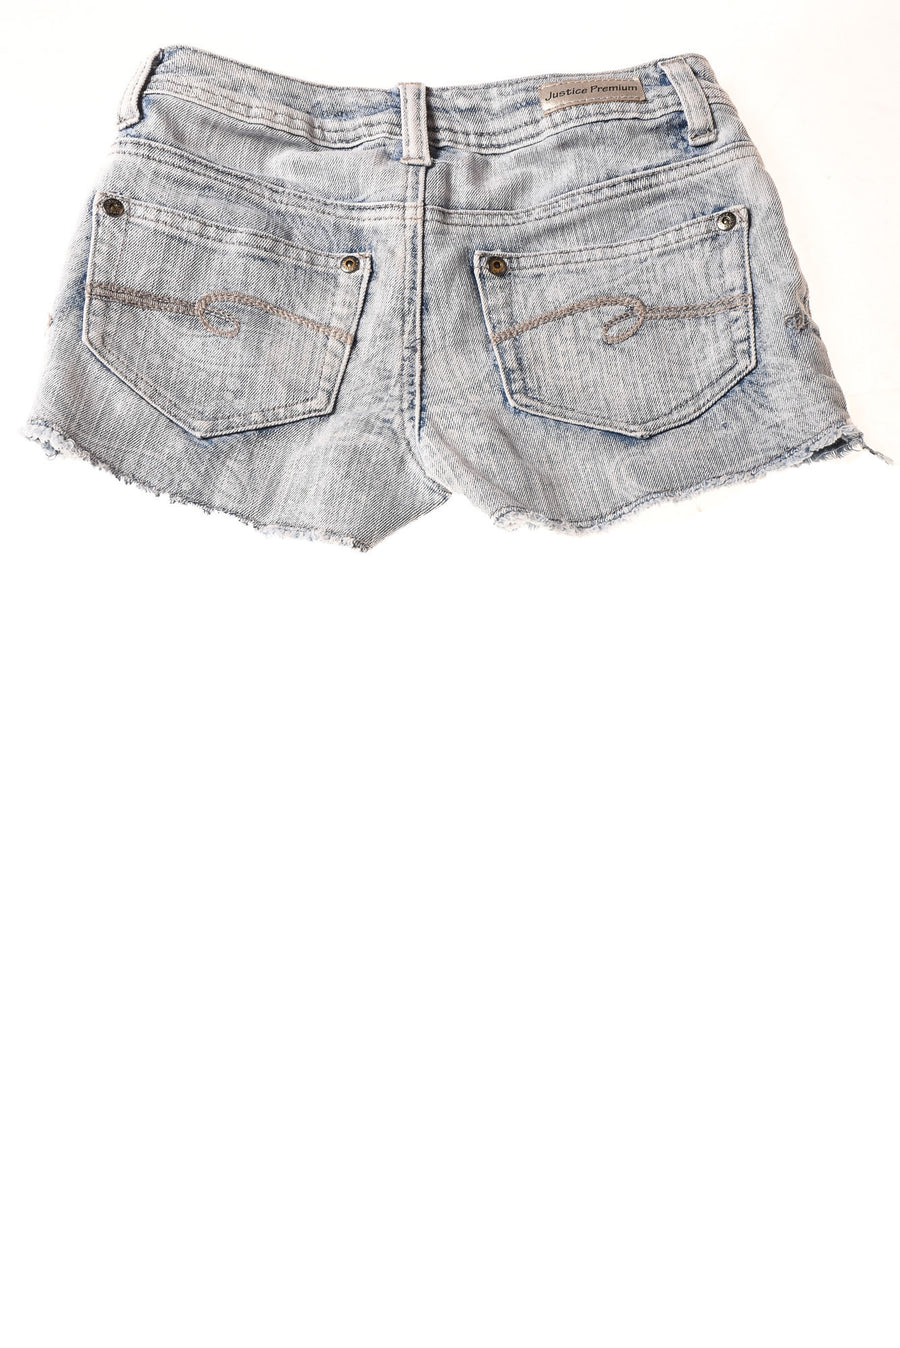 USED Justice Jeans Girl's Shorts 8 Blue & White